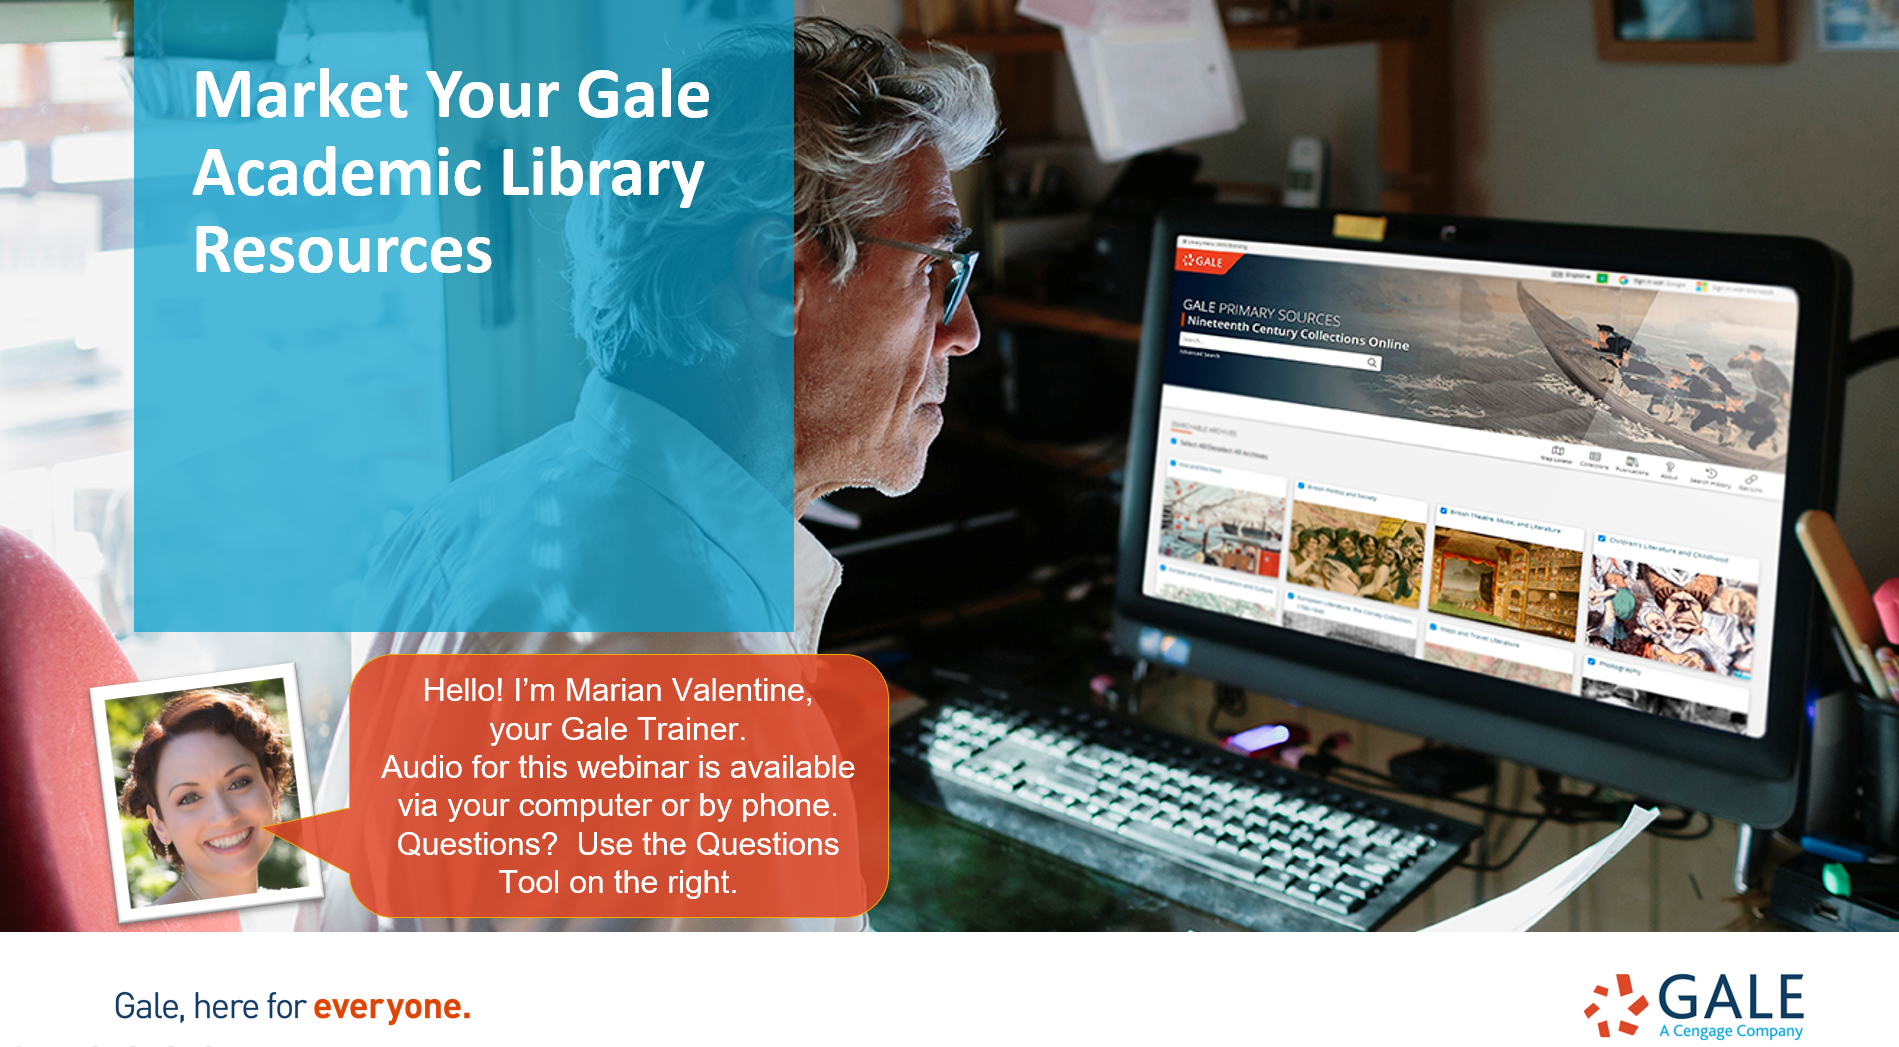 Market Your Gale Academic Library Resources Thumbnail